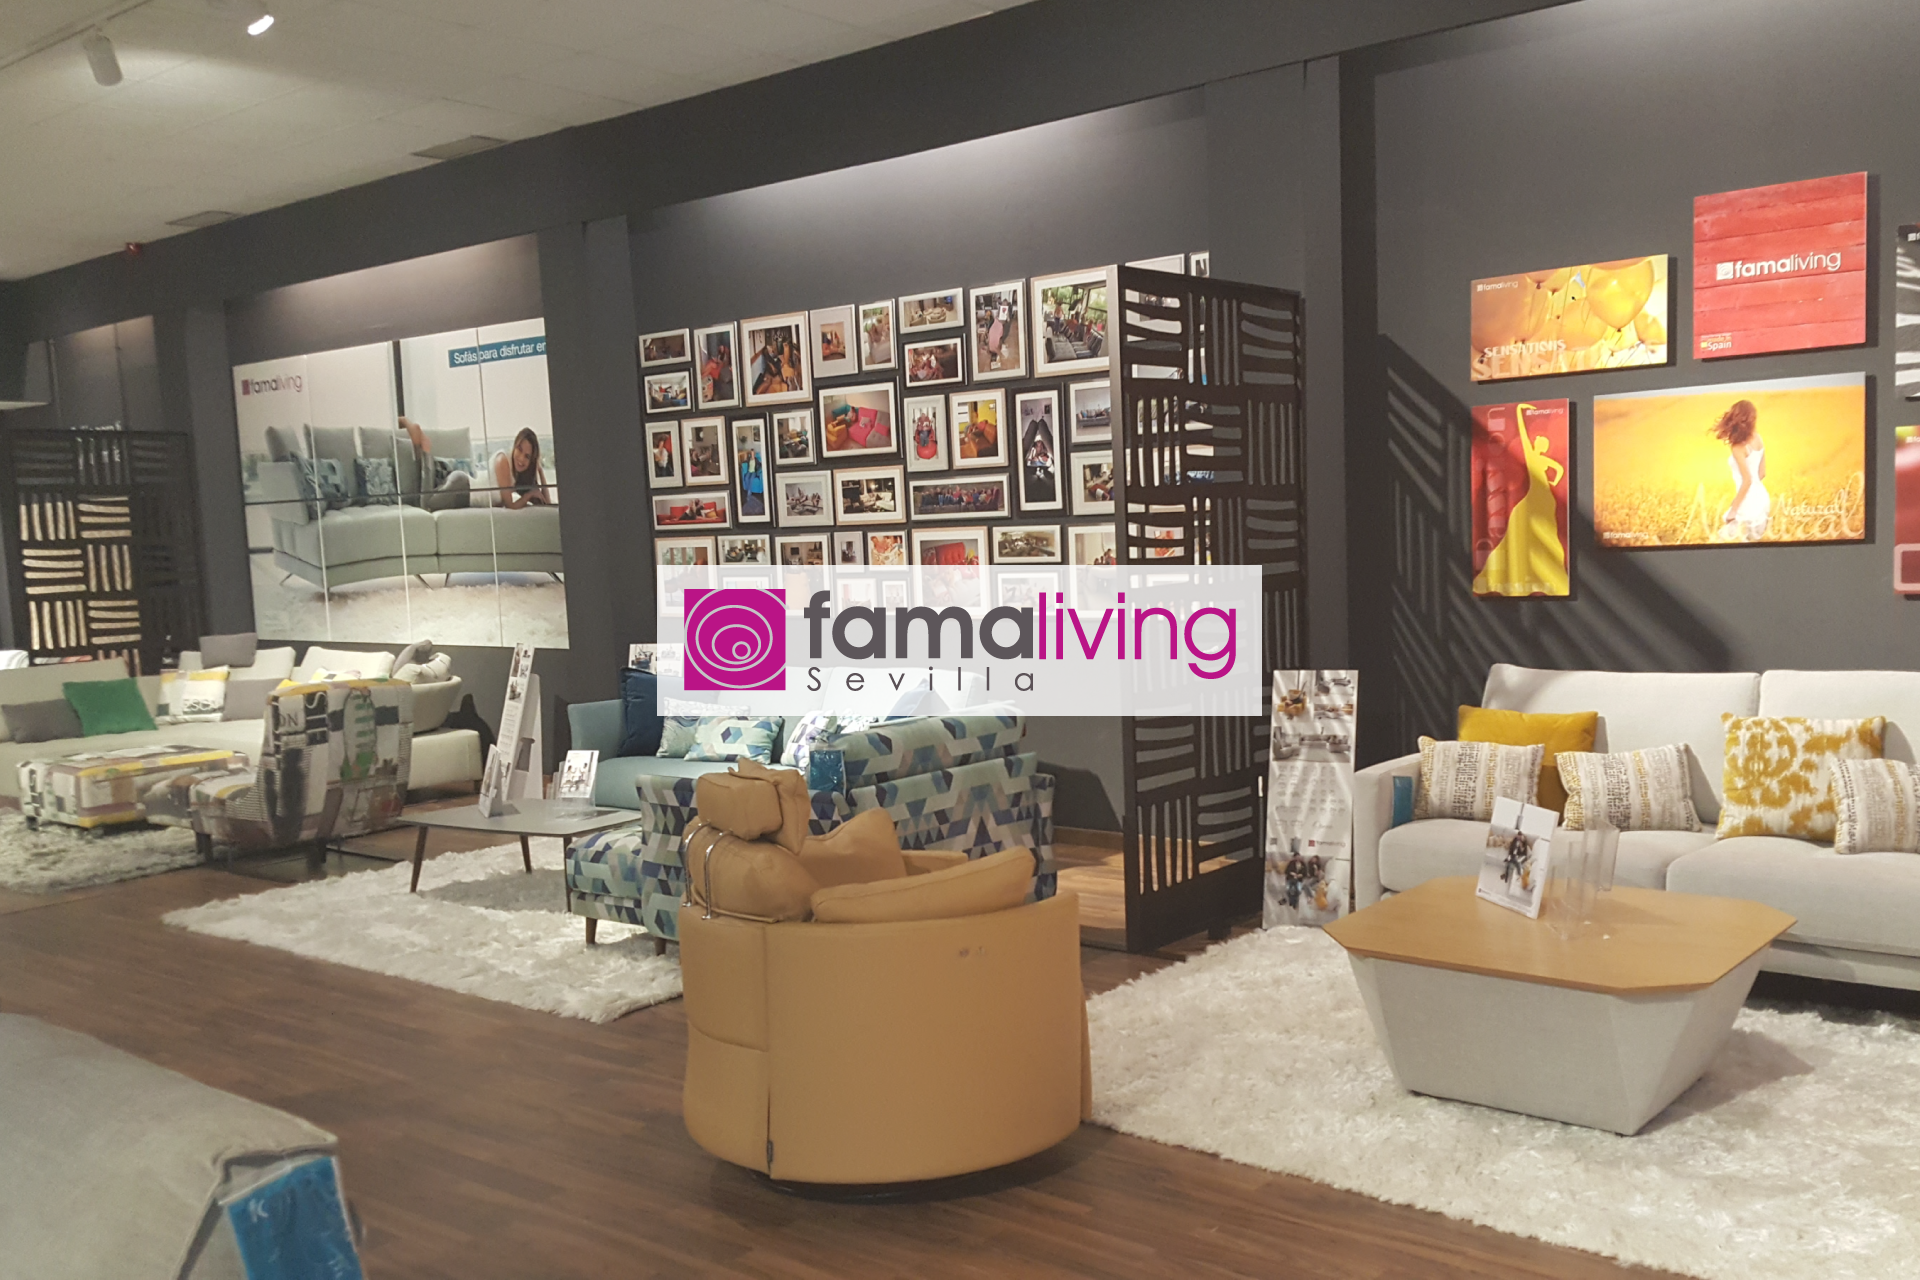 https://www.famaliving.com/sevilla-en